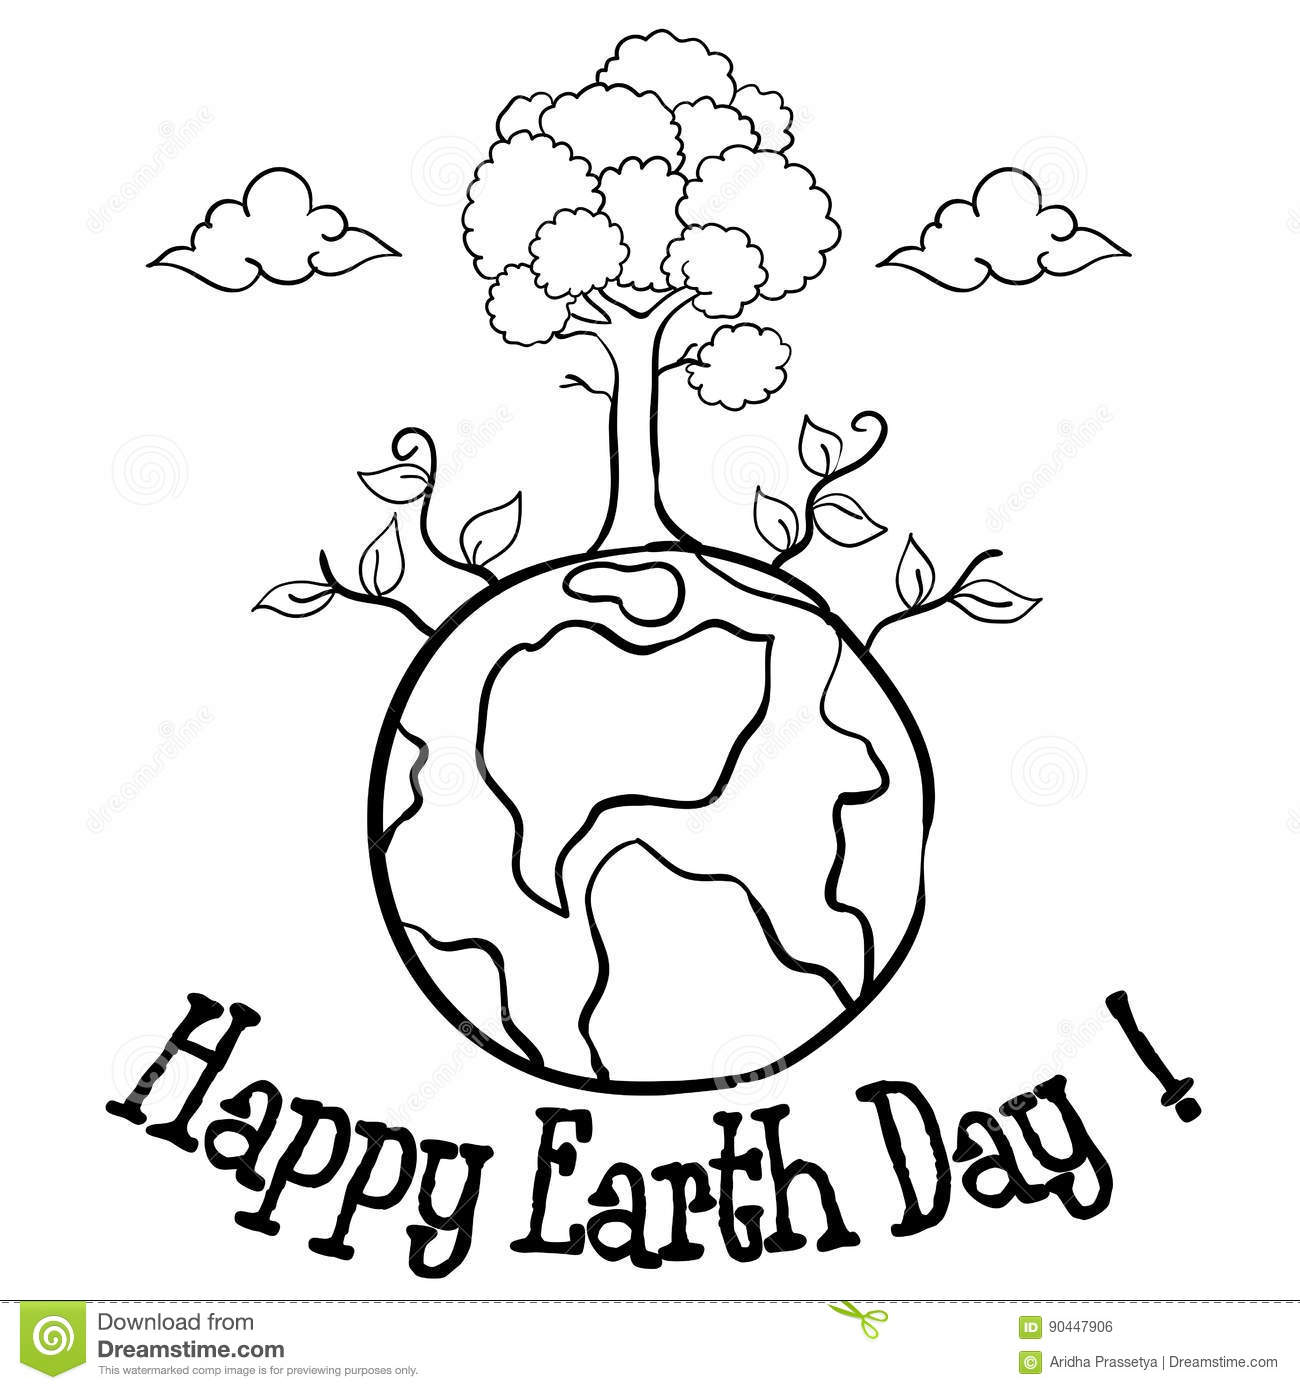 Happy Earth Day With Tree Hand Draw Stock Vector